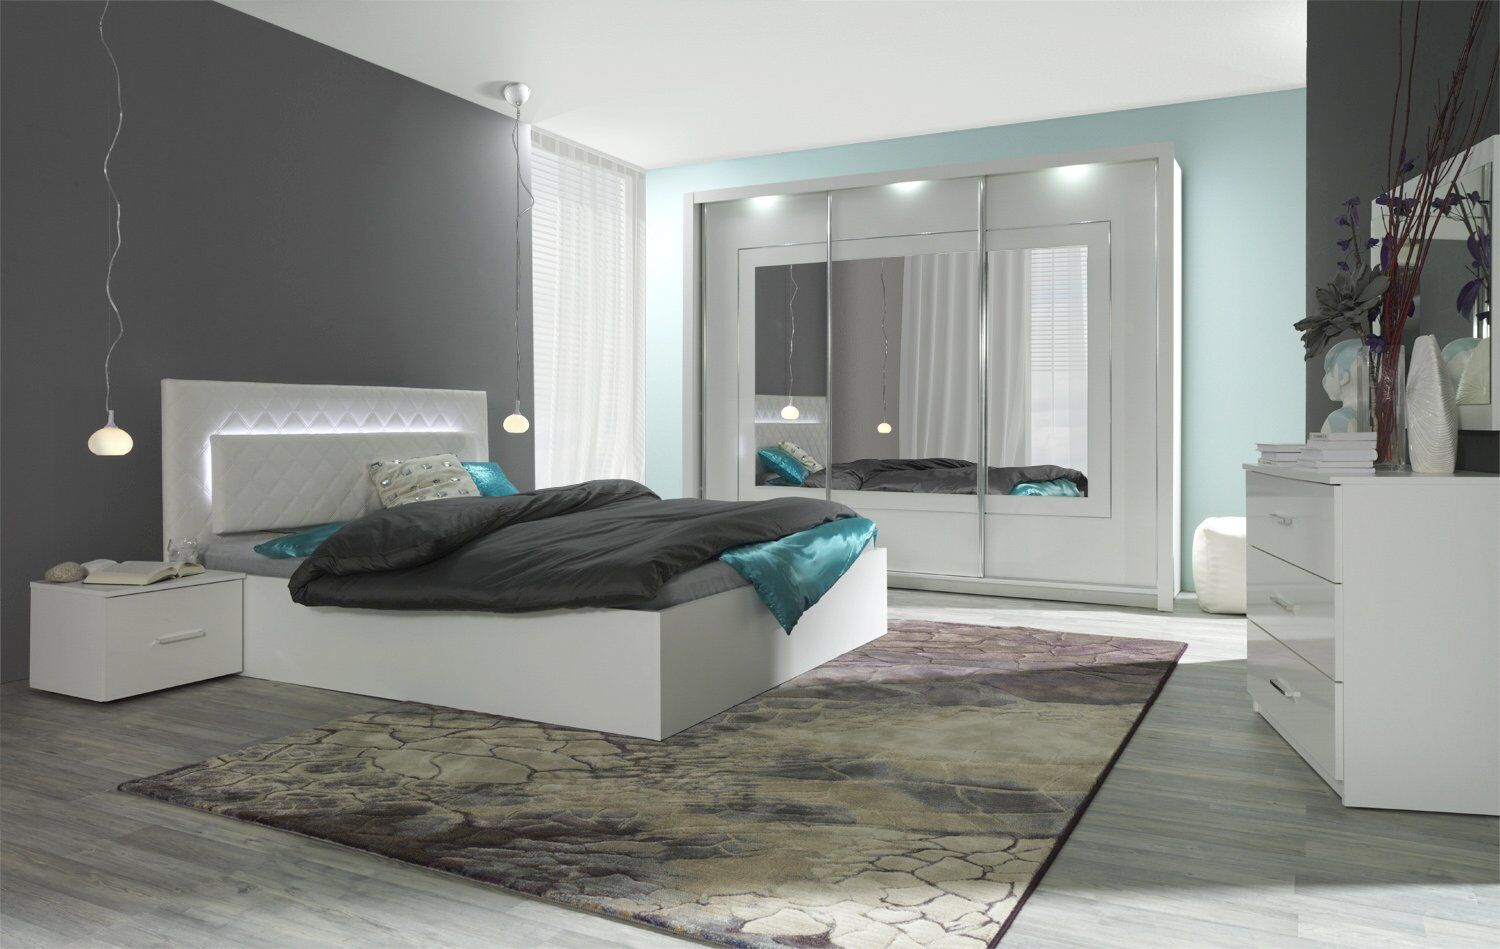 komplett schlafzimmer hochglanz wei mit led bett schrank 2 x nako eur 599 00 picclick de. Black Bedroom Furniture Sets. Home Design Ideas